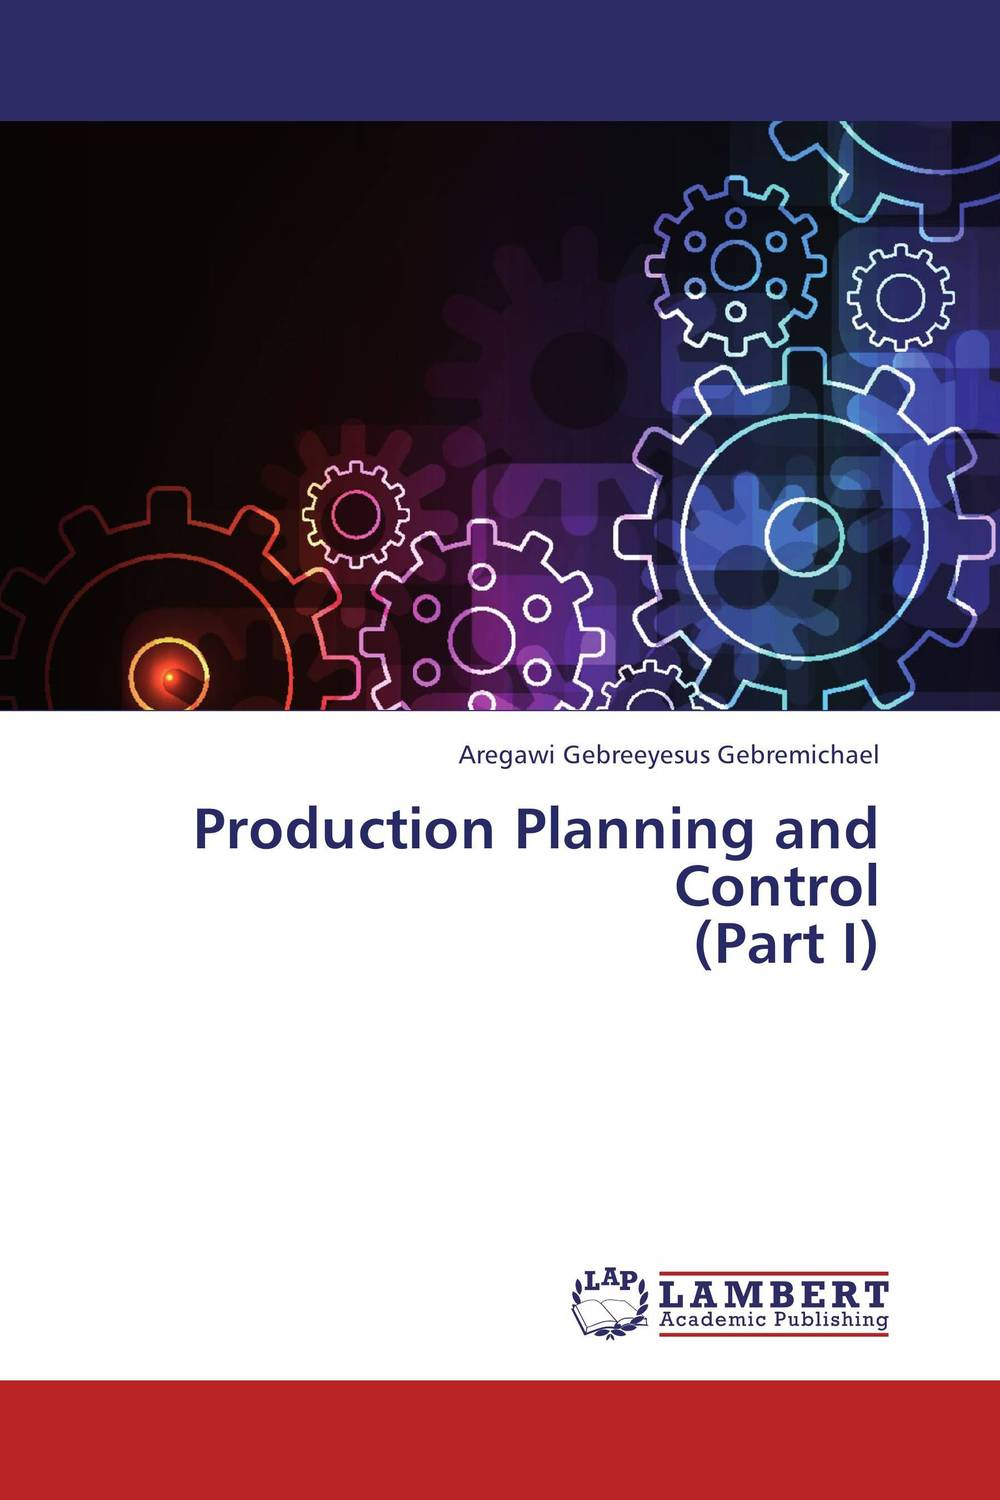 Production Planning and Control  (Part I) methods in enzymology chromatin and chromatin remodeling enzymes part a vol 375